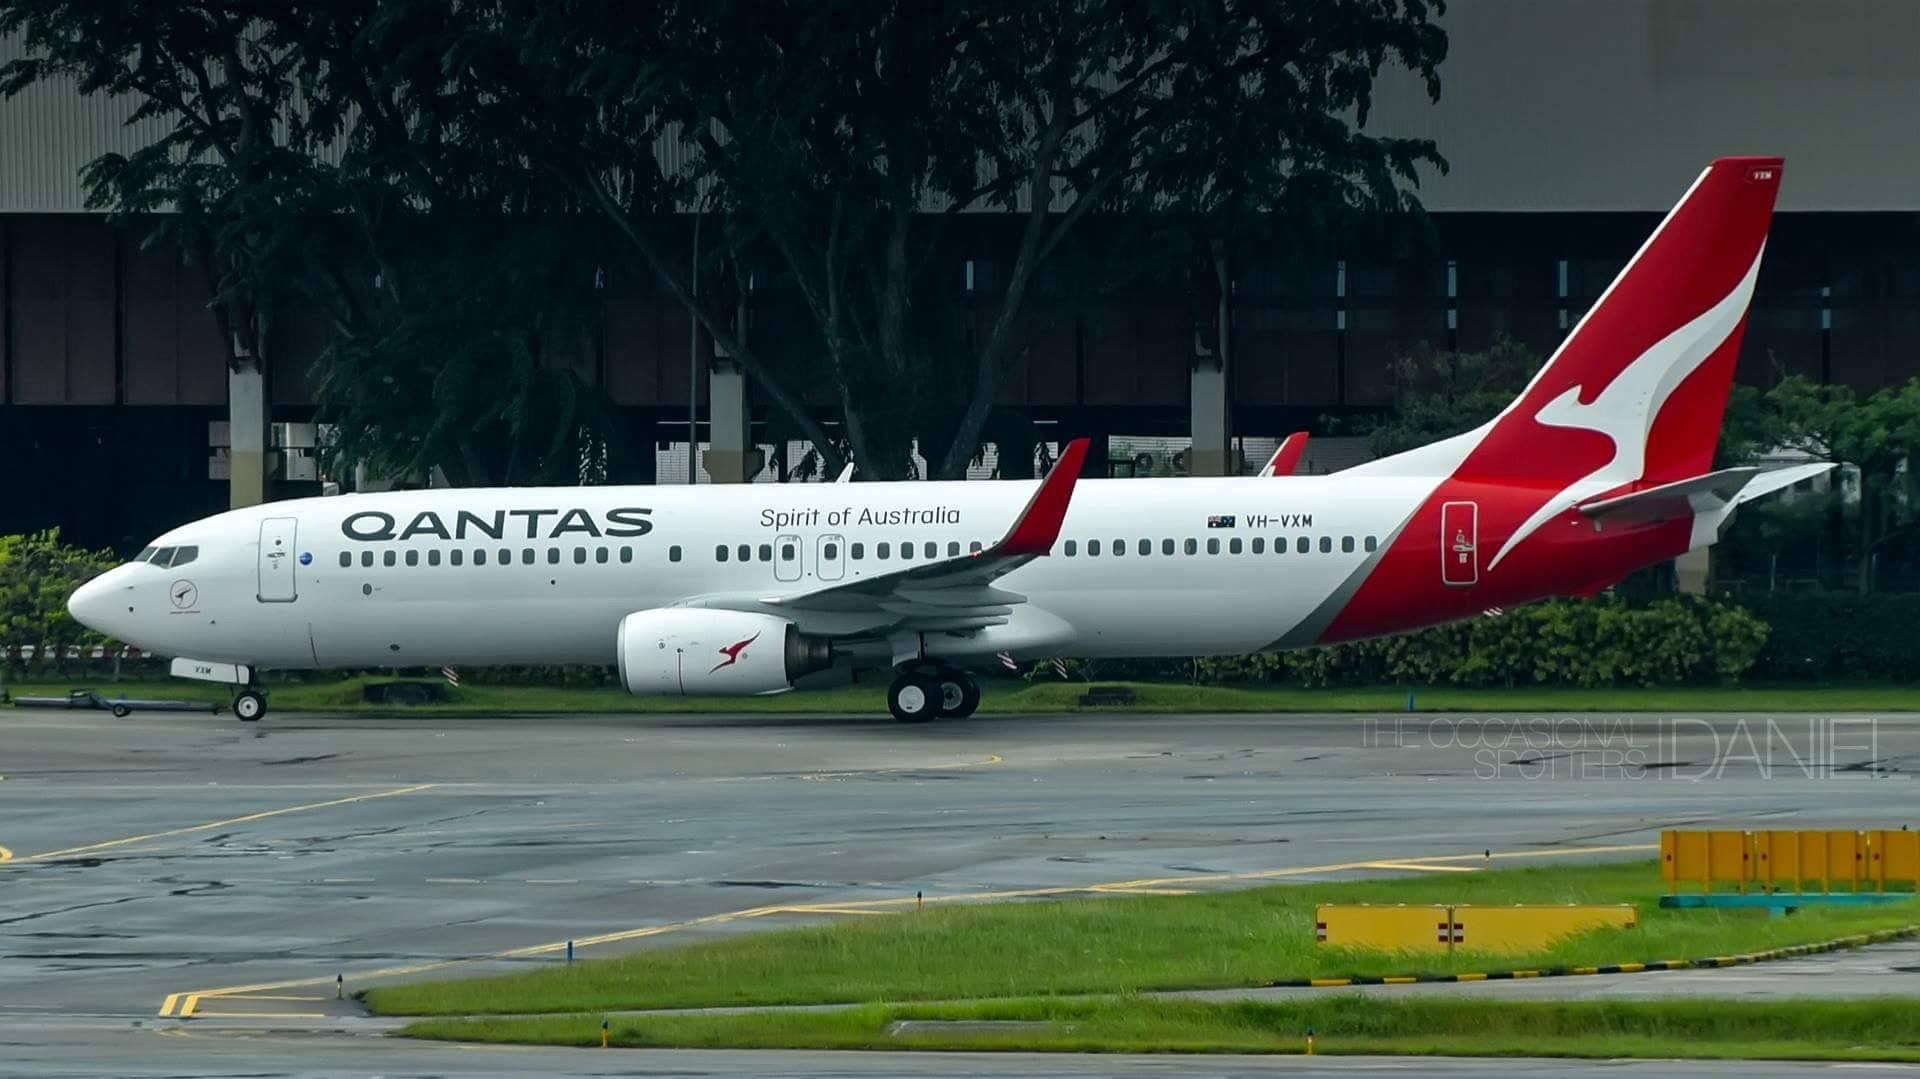 Qantas Boeing 737-800 (VH-VXM) in the new Qantas livery ...